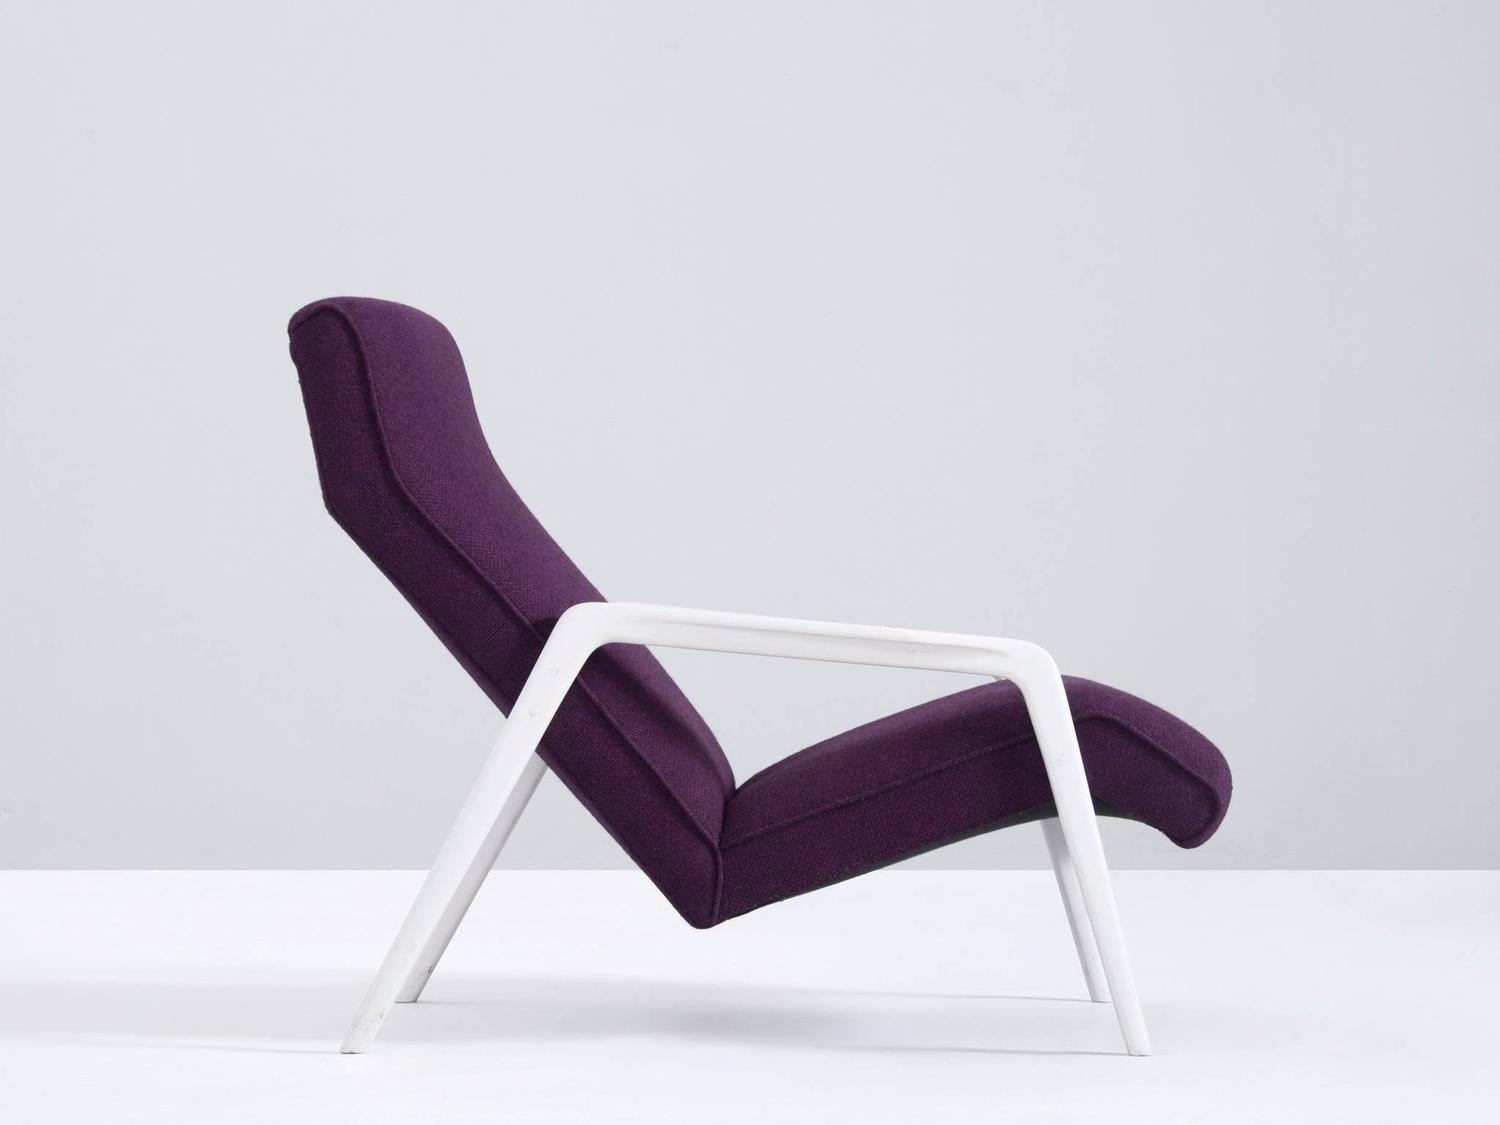 purple chaise lounge chair west elm dining chairs scandinavian in upholstery for sale at